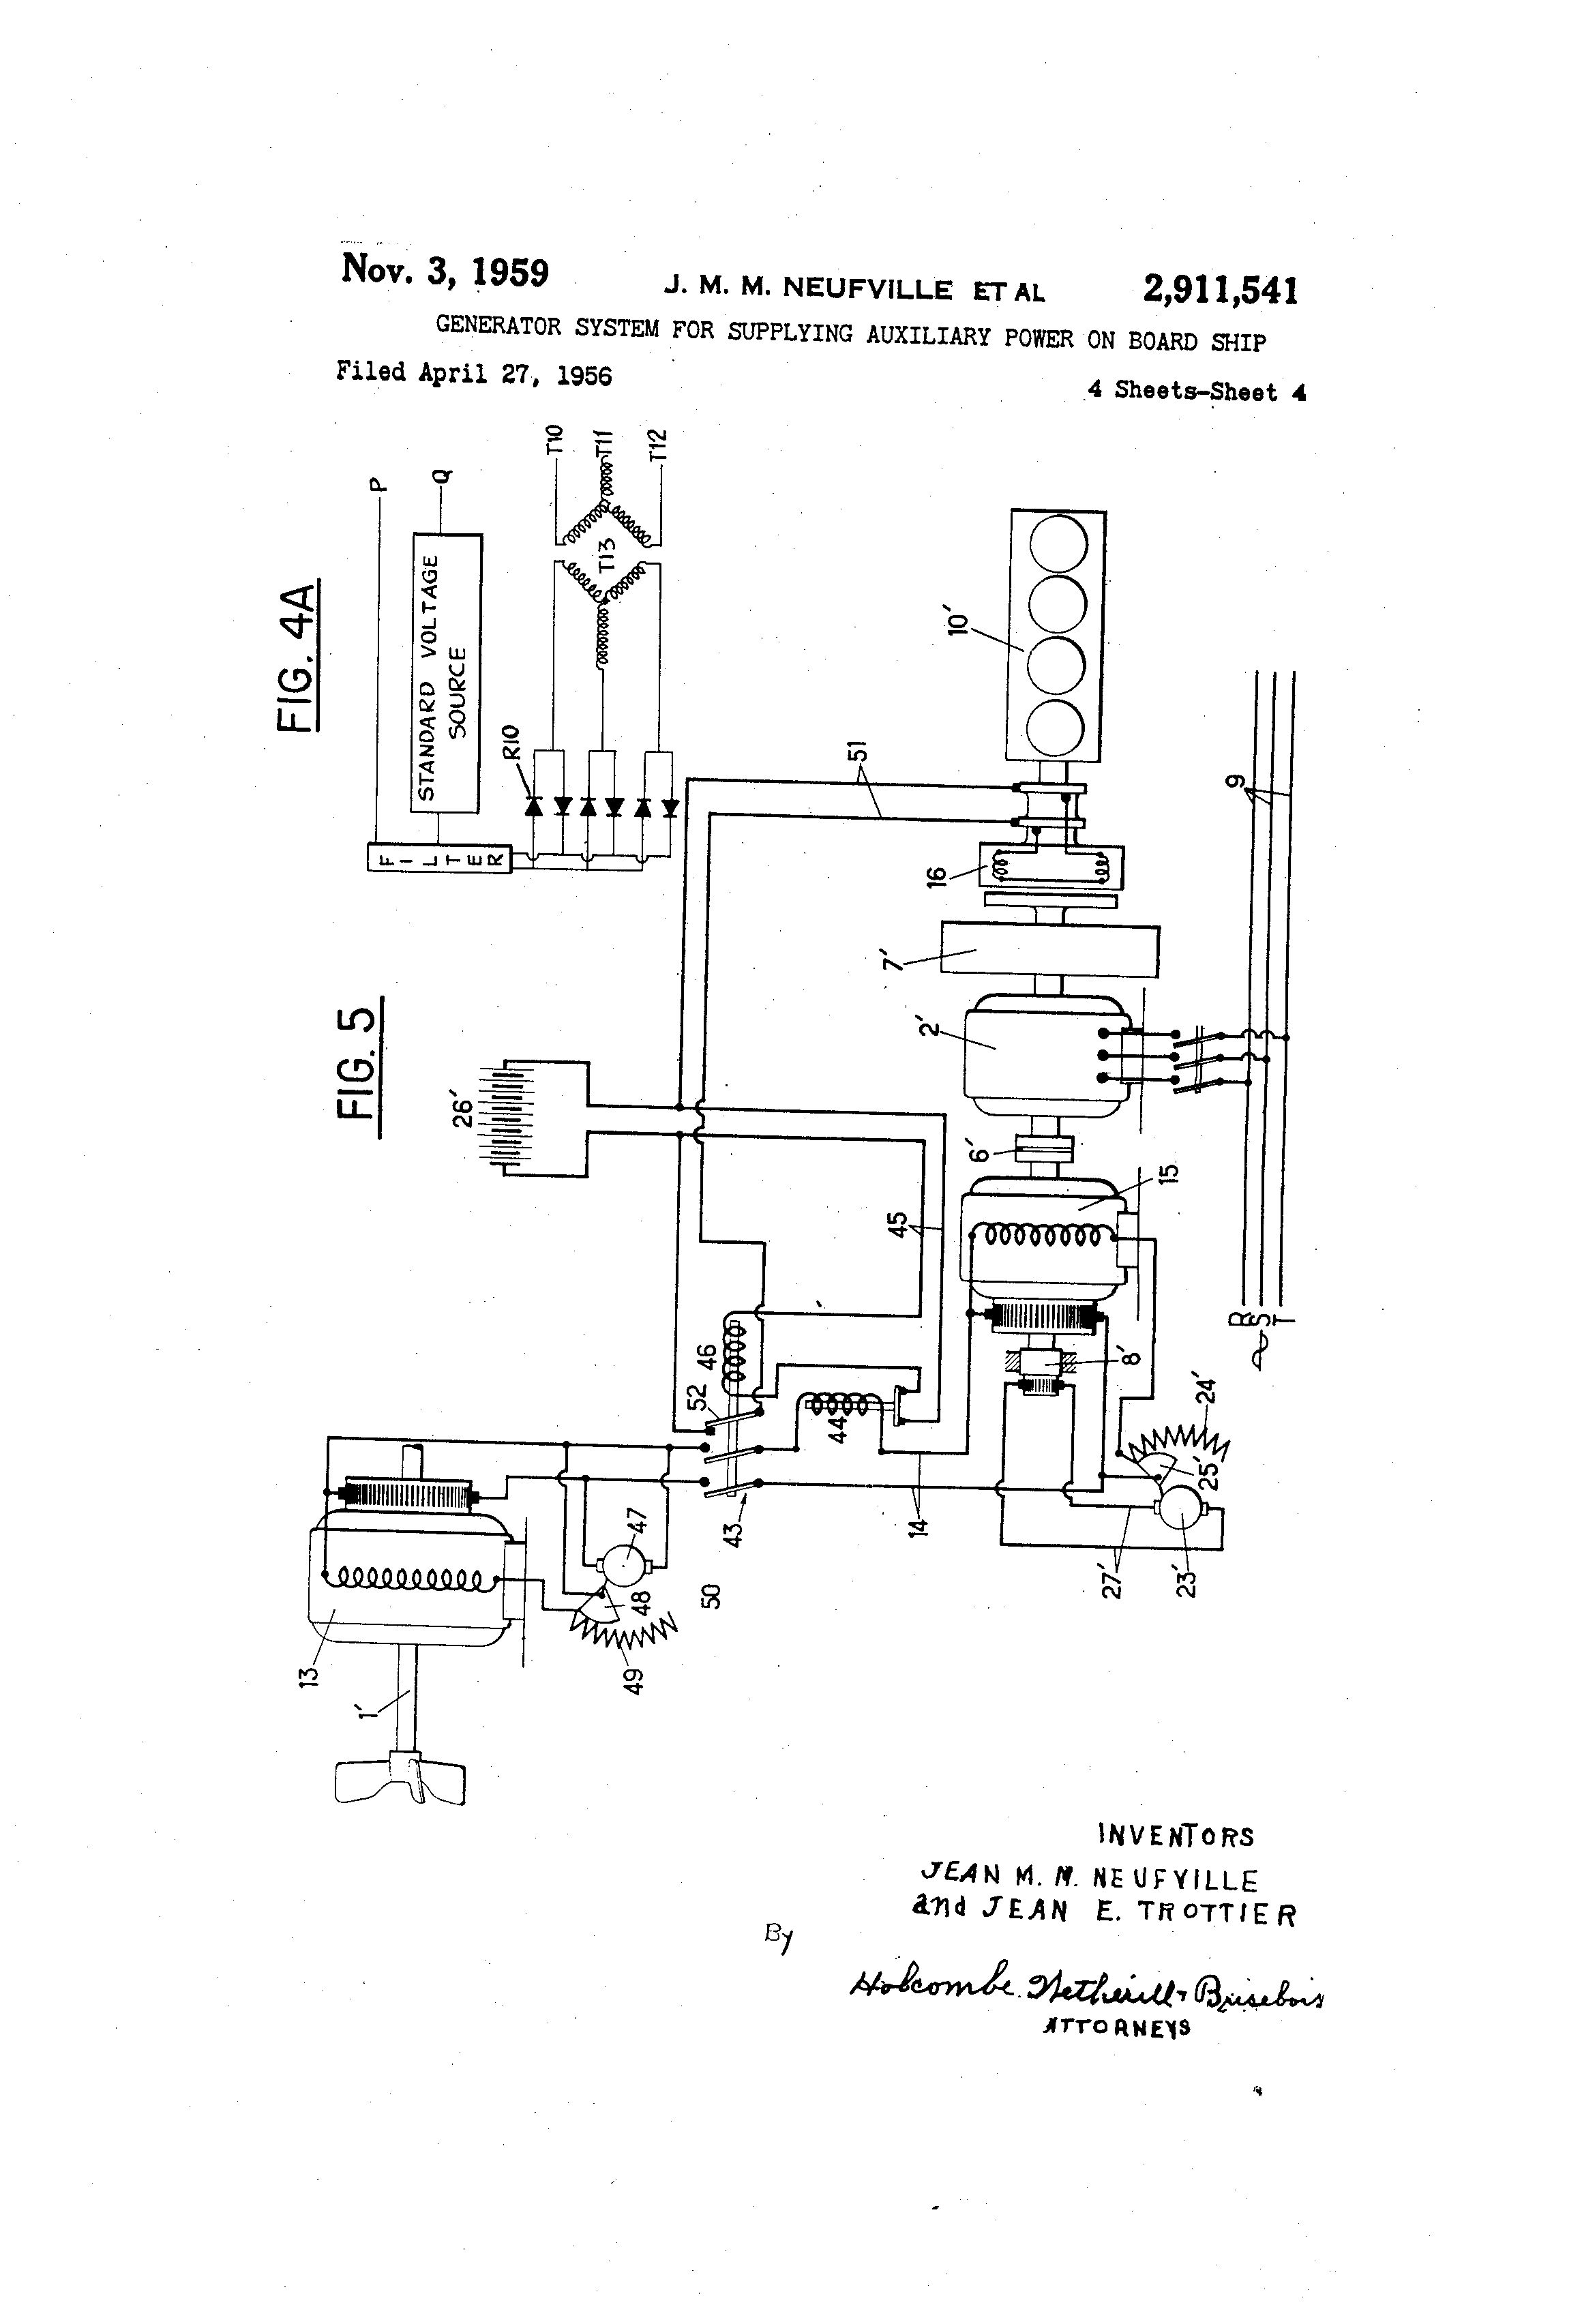 Leroy Somer R450 Wiring Diagram 31 Images R438 Voltage Regulator Us2911541 3 Patent Generator System For Supplying Auxiliary Power At